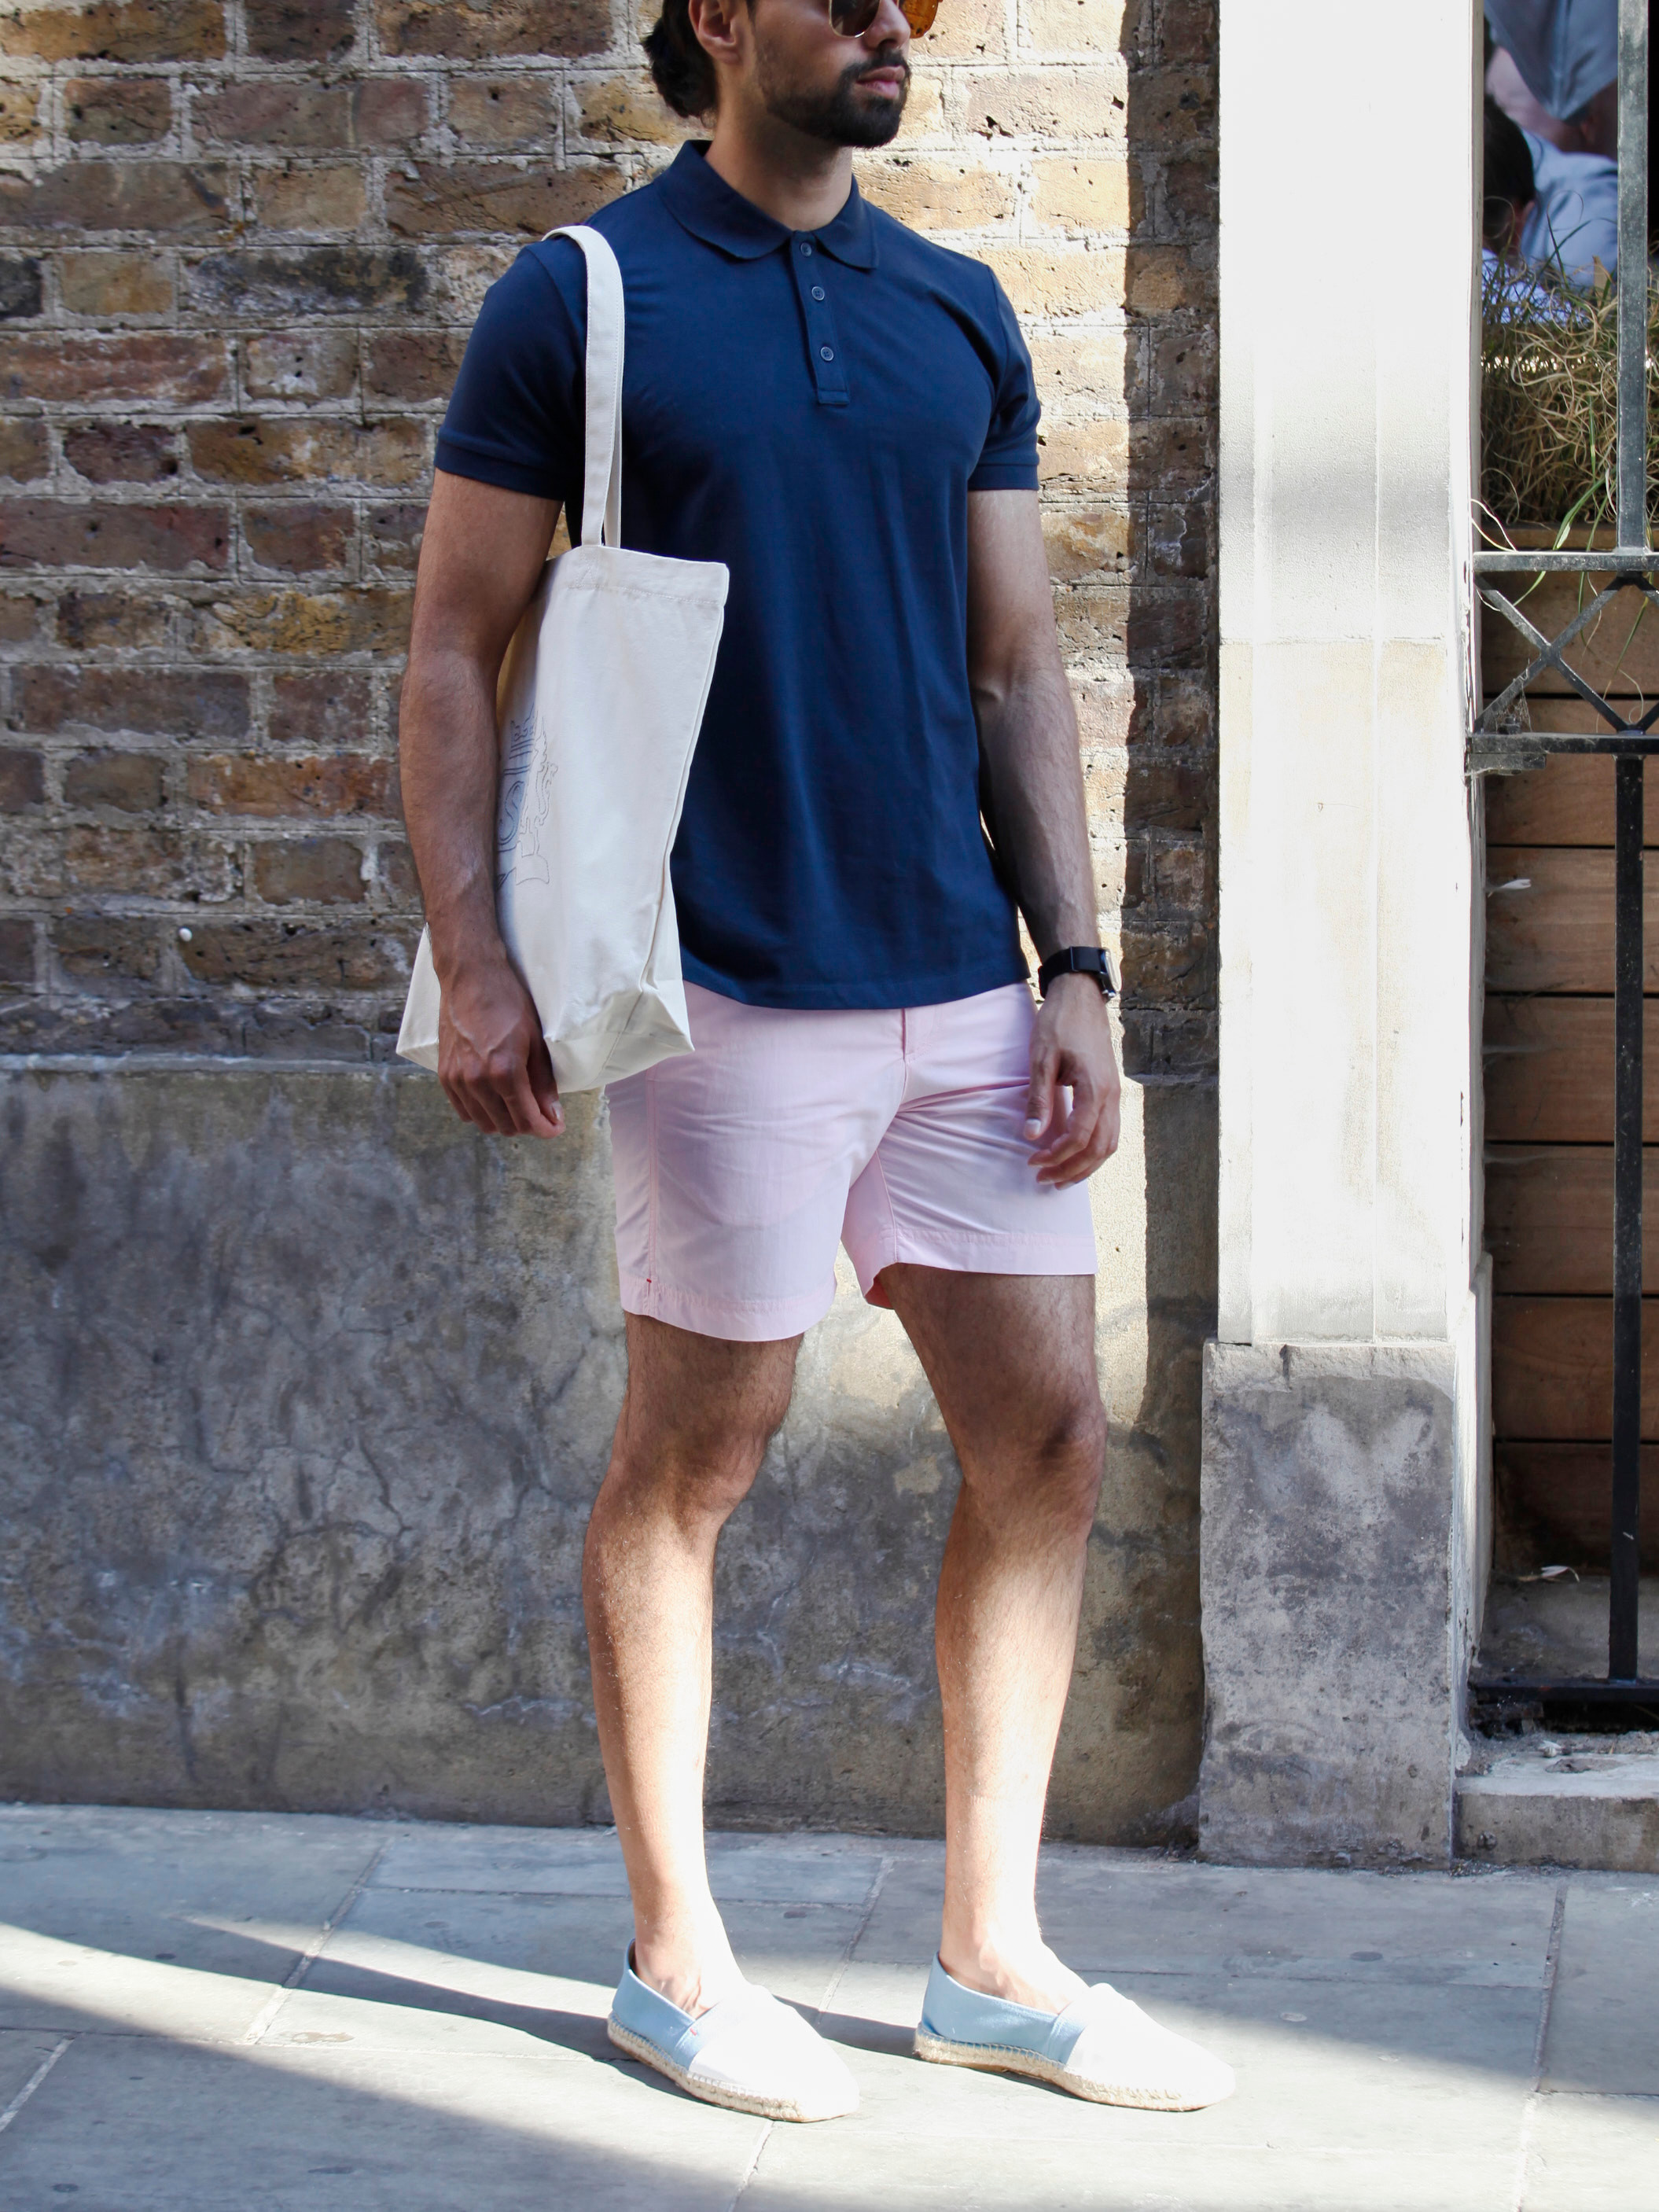 Men's outfit idea for 2021 with navy polo, swimwear, leather strap watch, espadrilles. Suitable for summer.